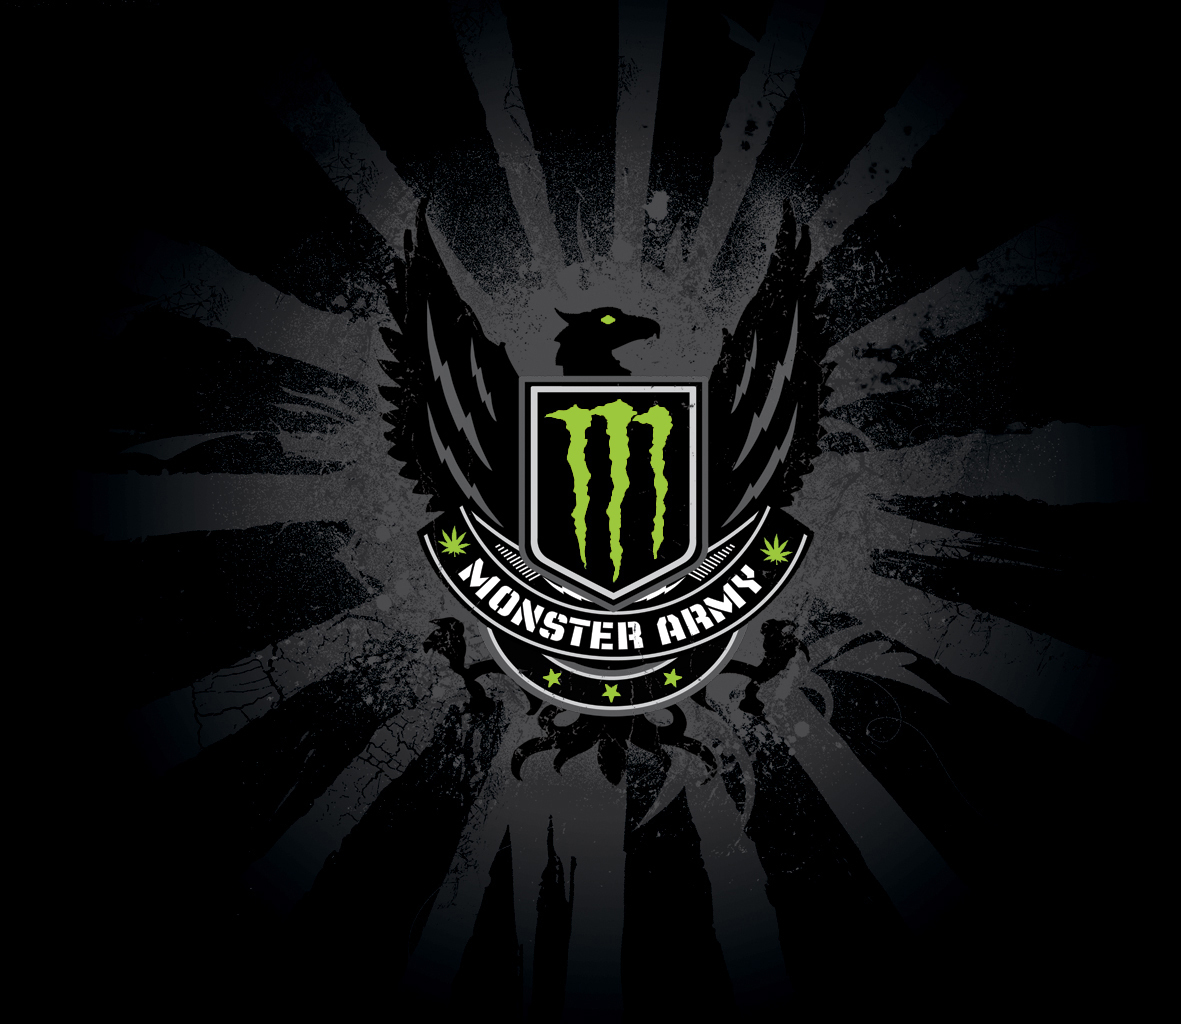 Monster Energy Wallpaper on Logos Monster Energy Hd Wallpaper   Wild Animal   Reptiles   627671